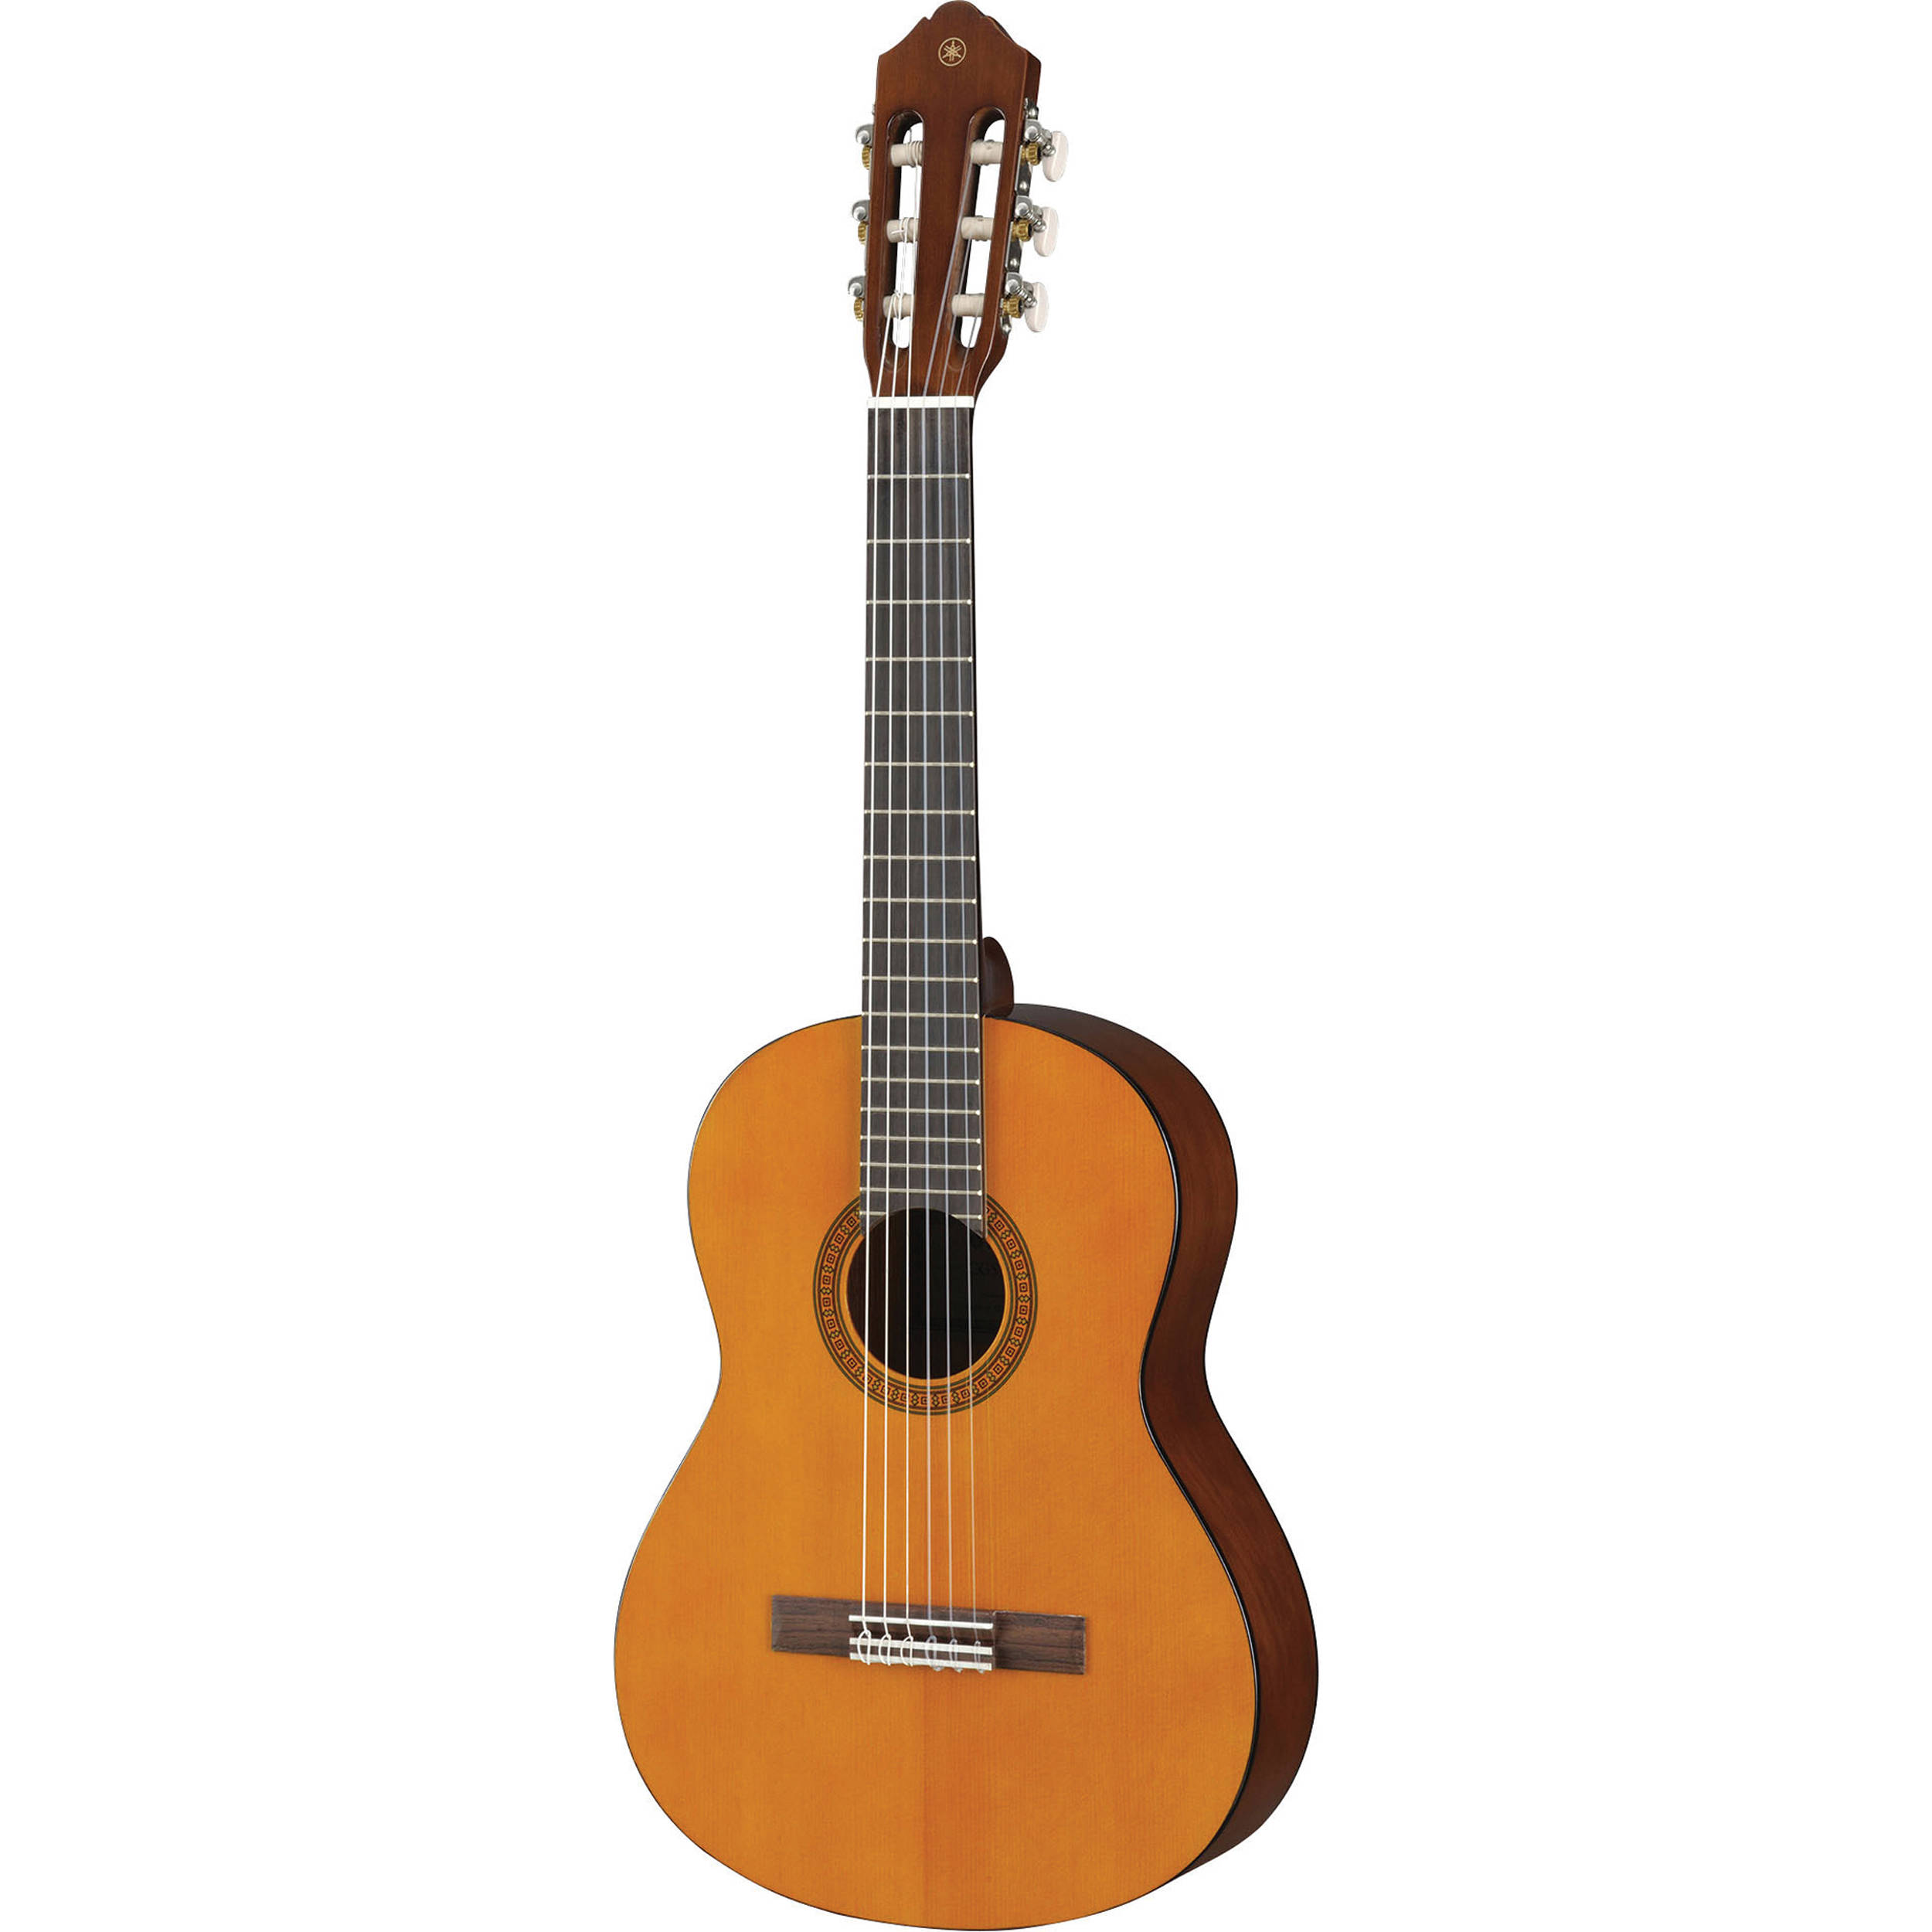 yamaha cgs102aii 1 2 size nylon string classical guitar. Black Bedroom Furniture Sets. Home Design Ideas